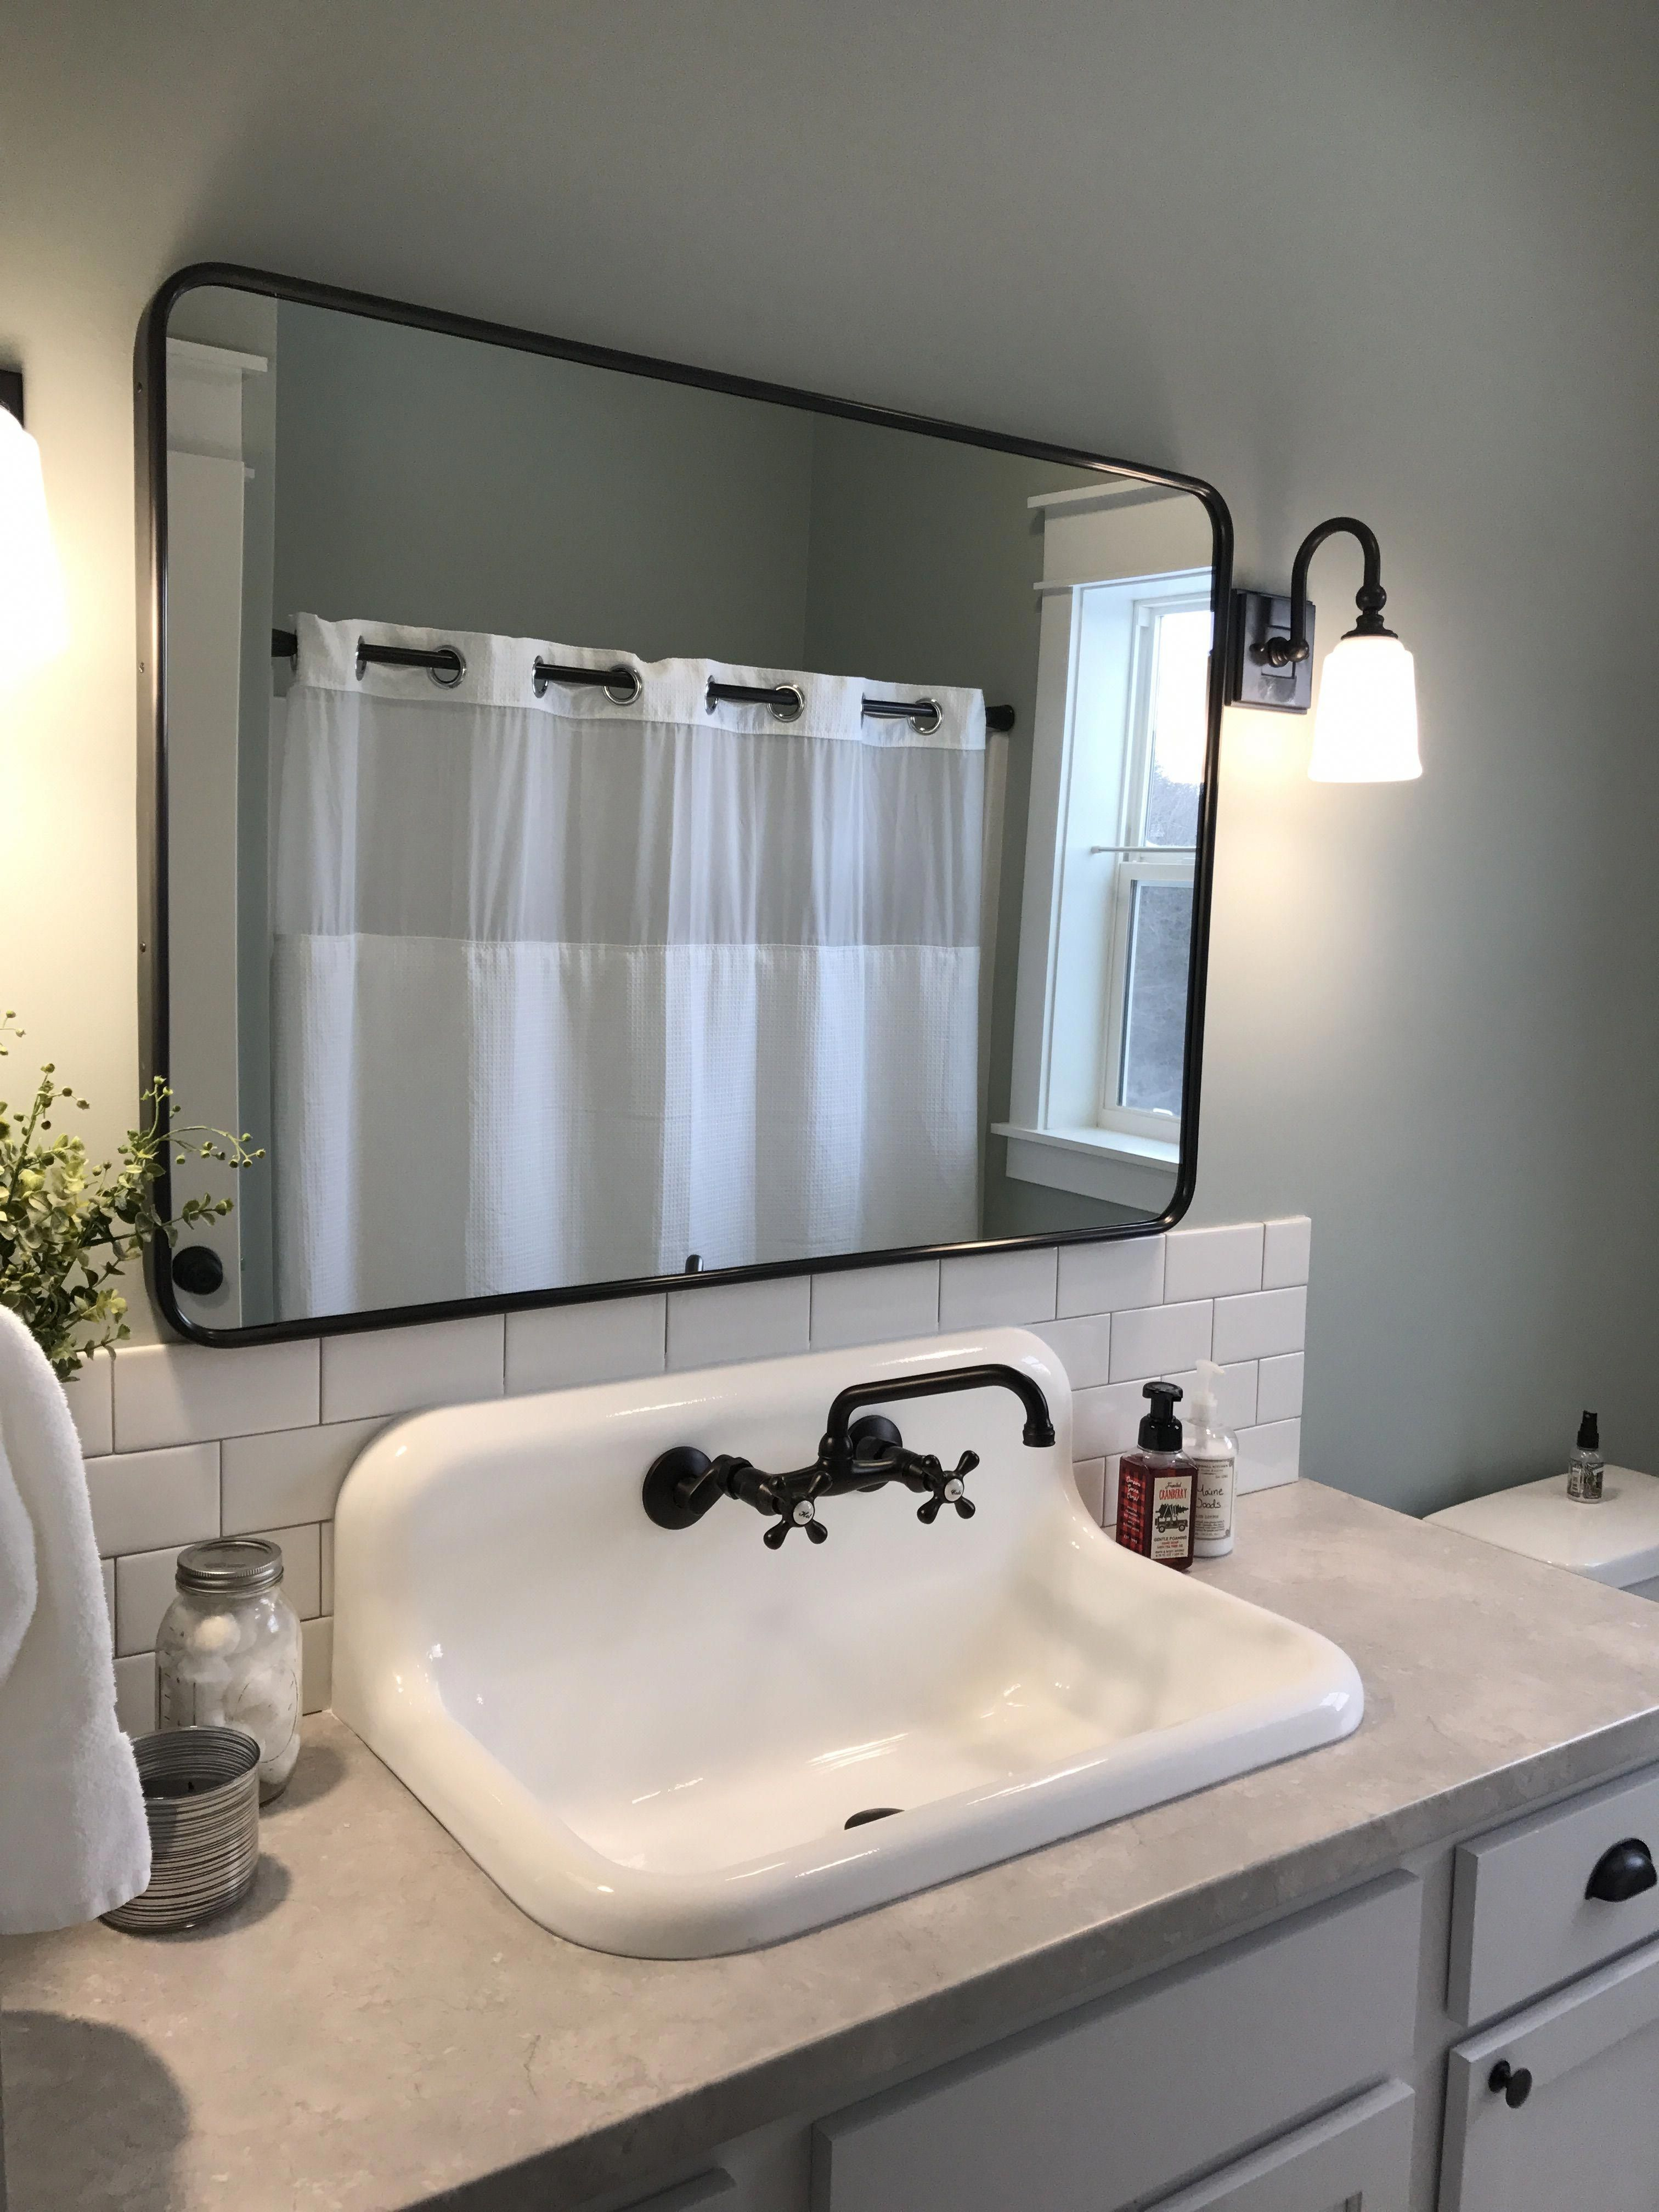 Farmhouse Bathroom With High Back Cast Iron Sink Primitivekitchen Farmhouse Bathroom Sink Vintage Bathroom Sinks Bathroom Remodel Cost